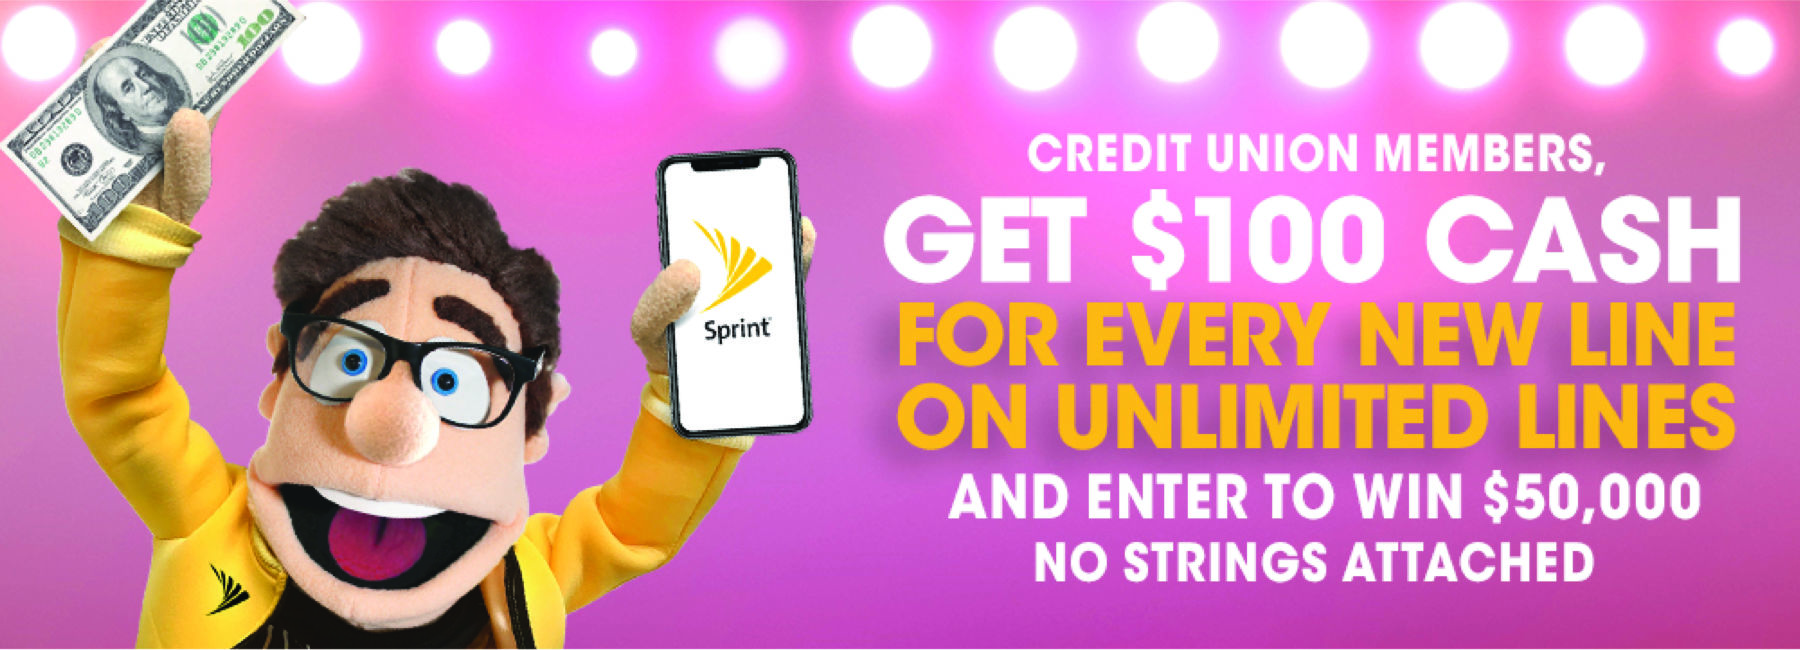 Sprint advertisement